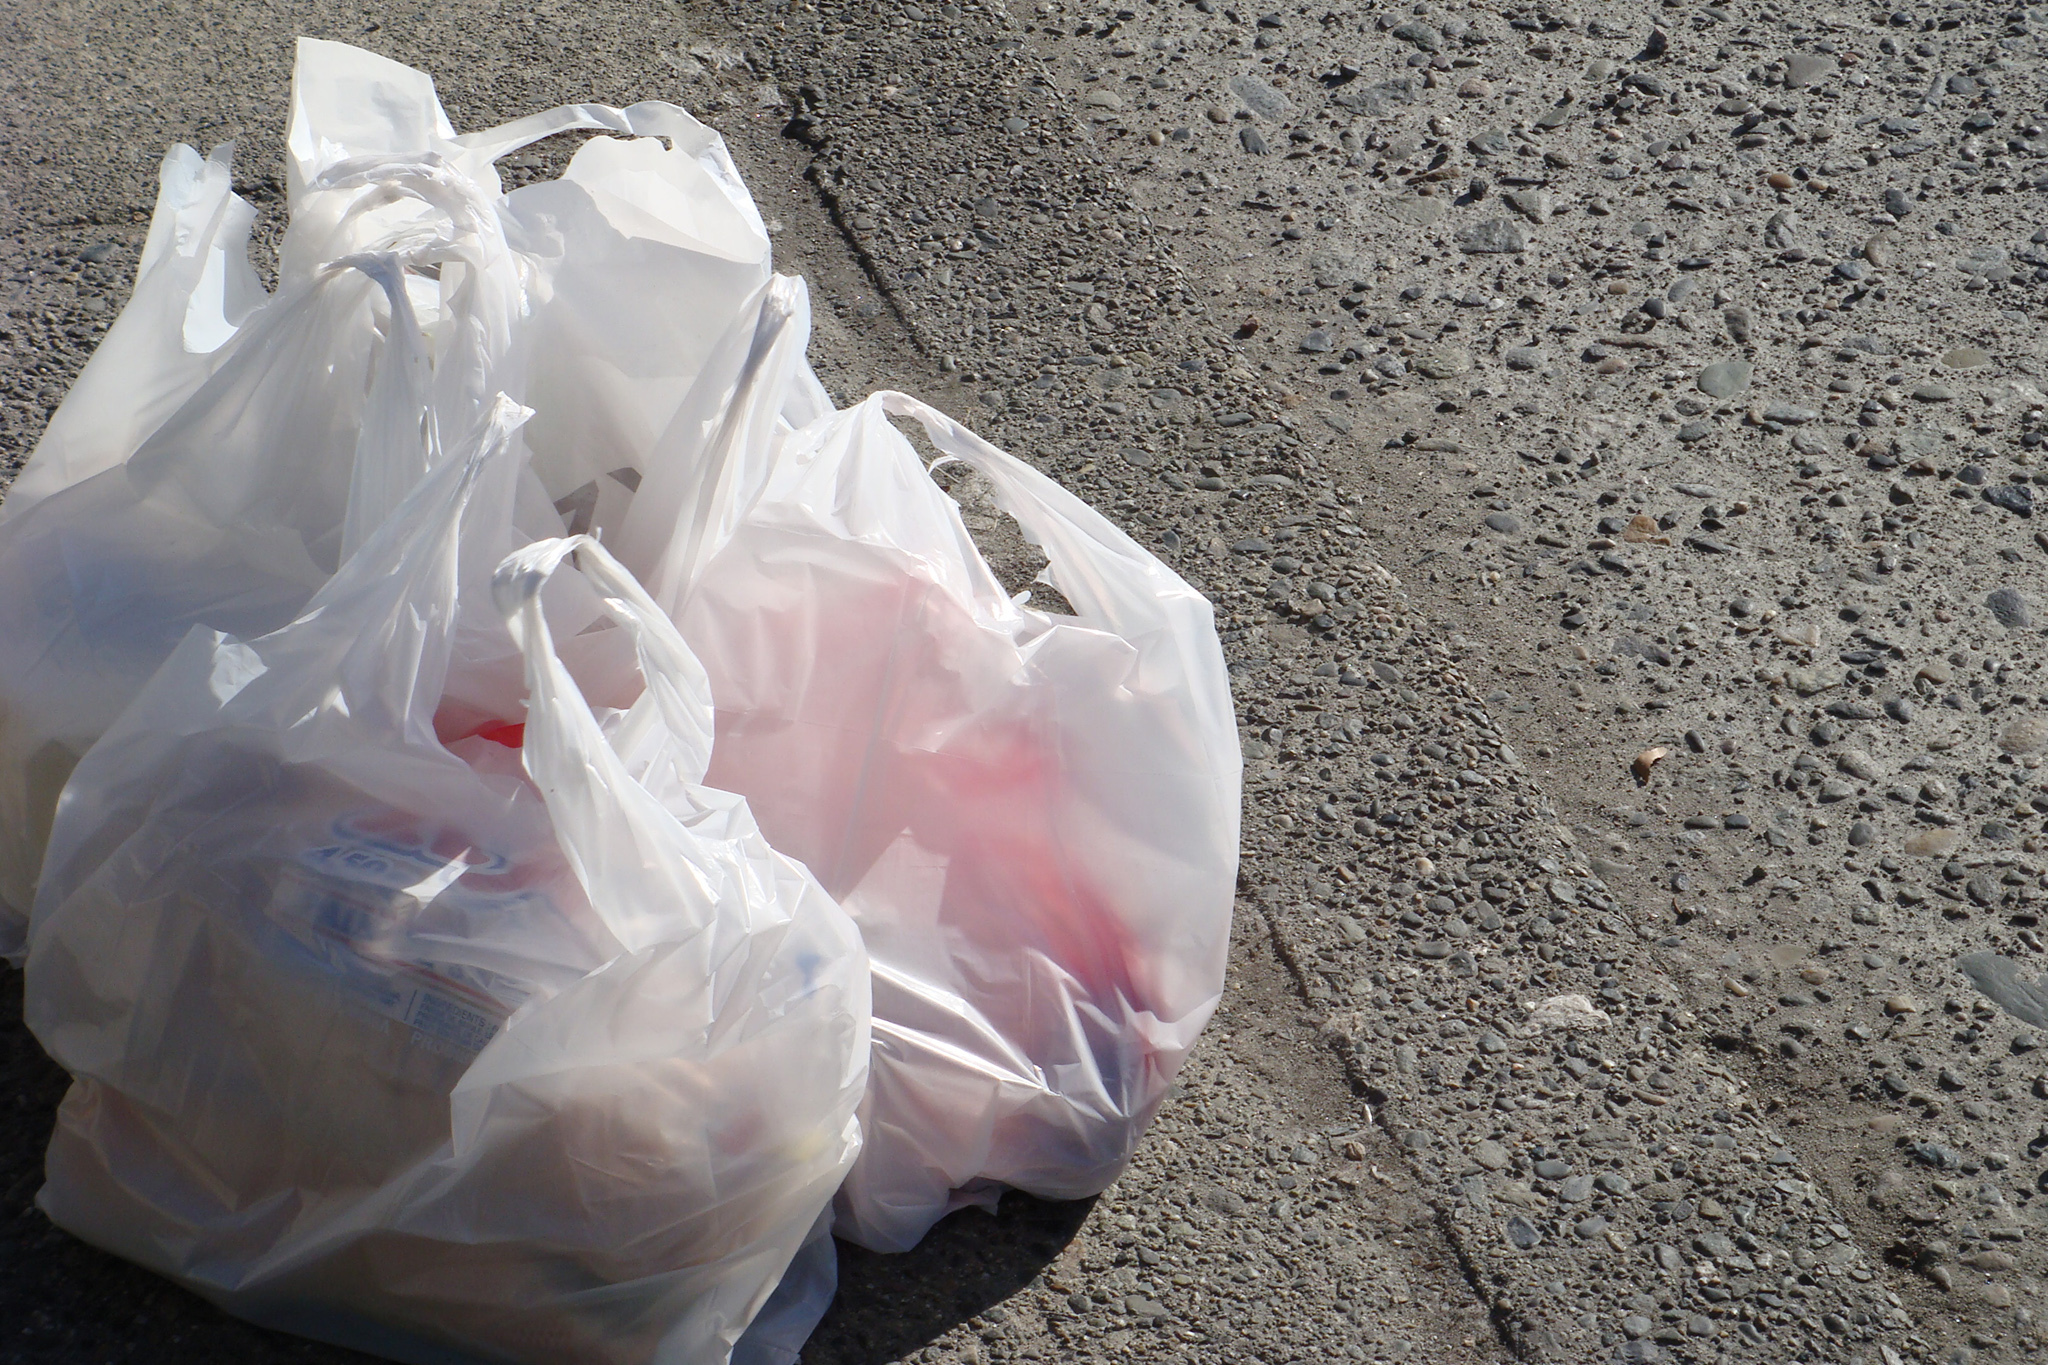 Chicago's bag tax brings significant drop in disposable bag use, study finds